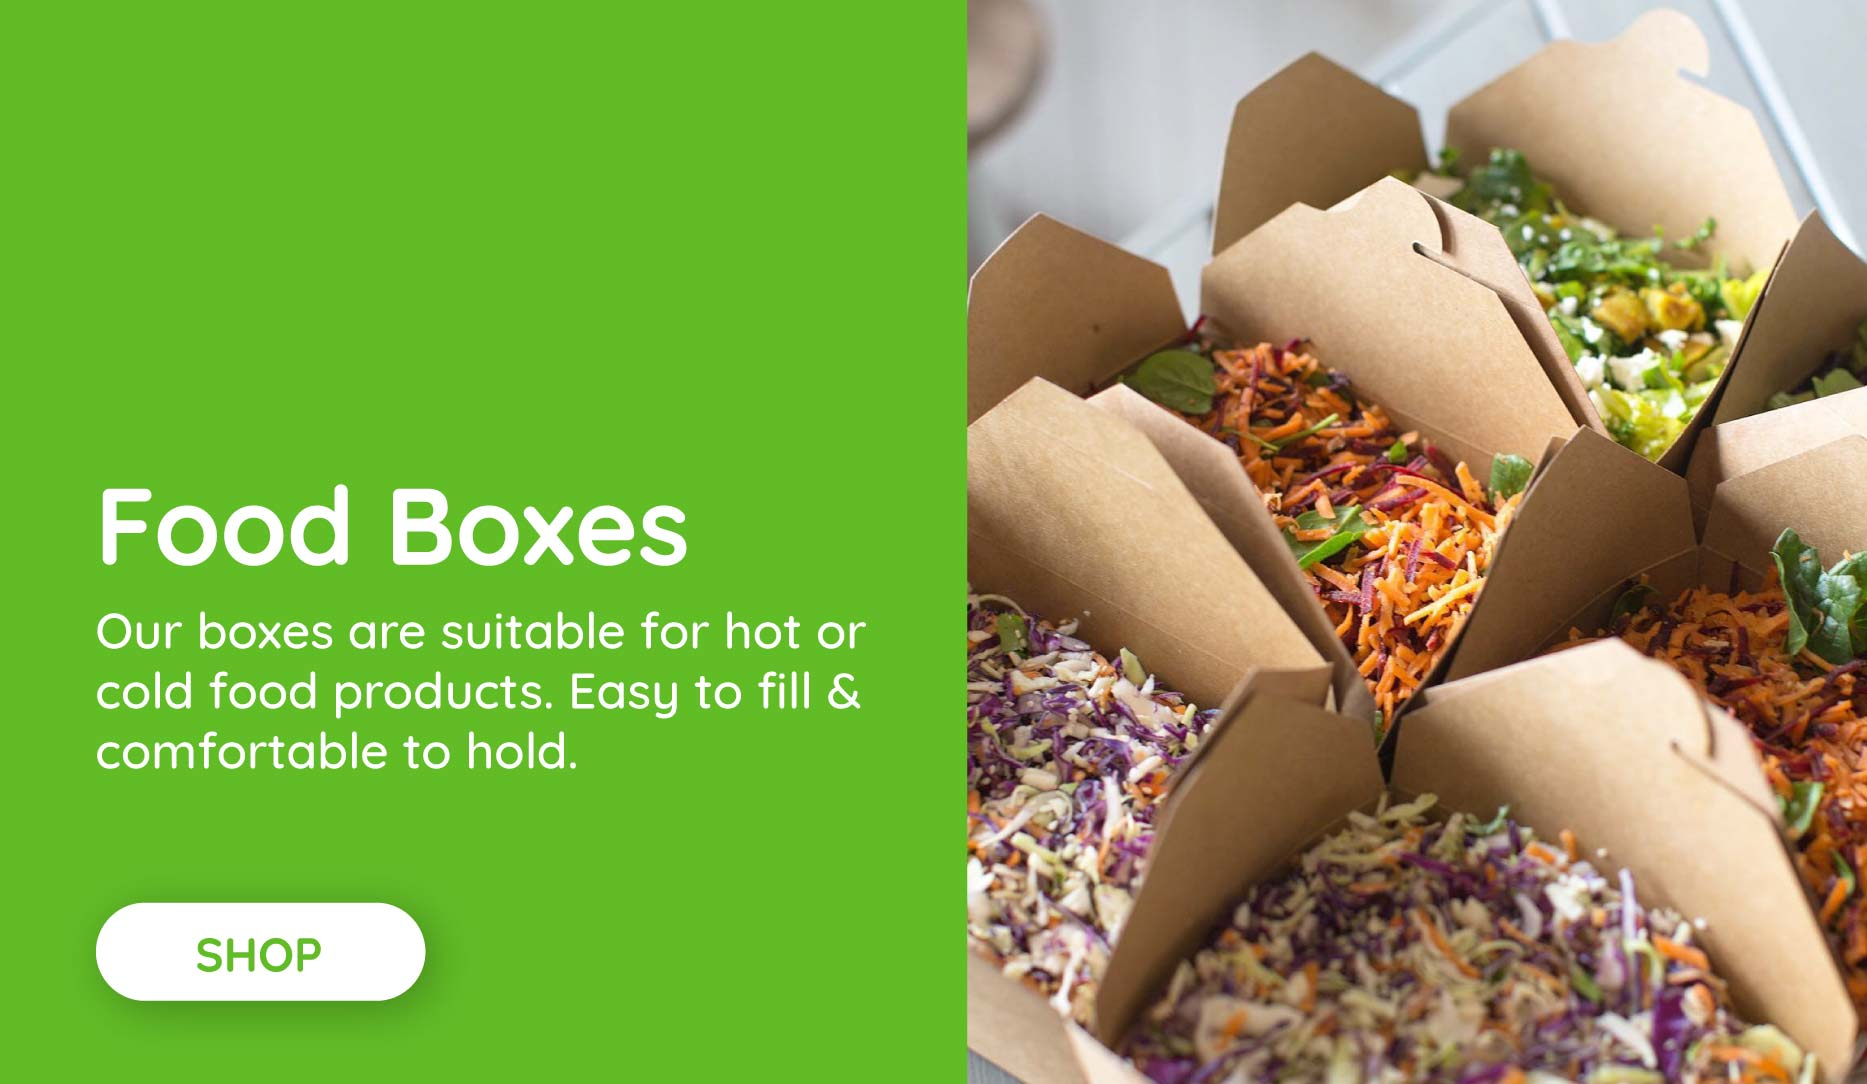 Shop food boxes